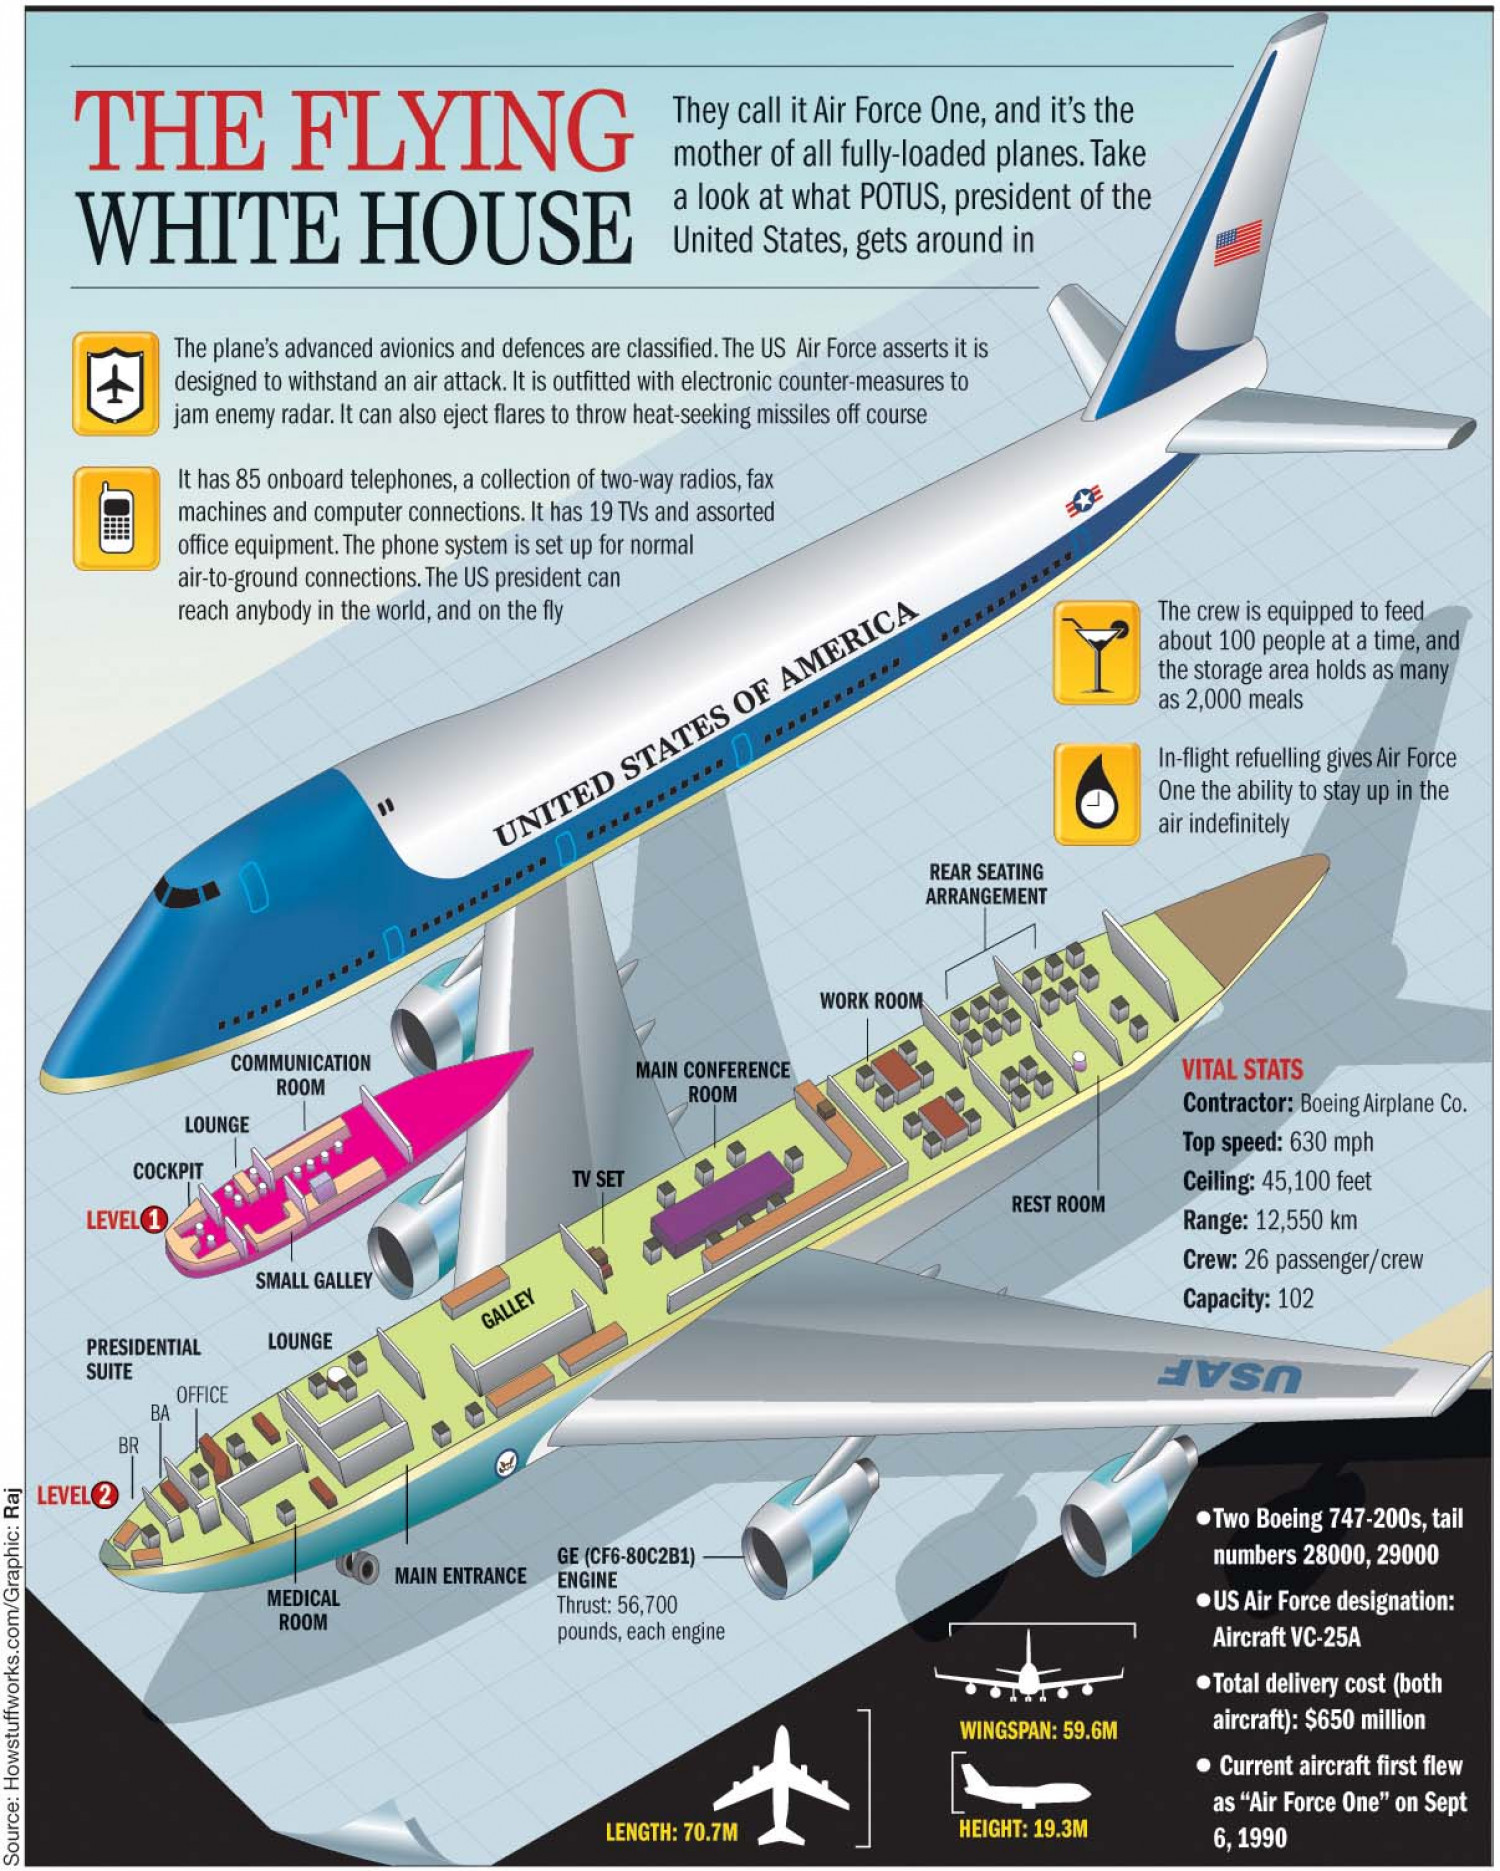 The Flying White House Infographic